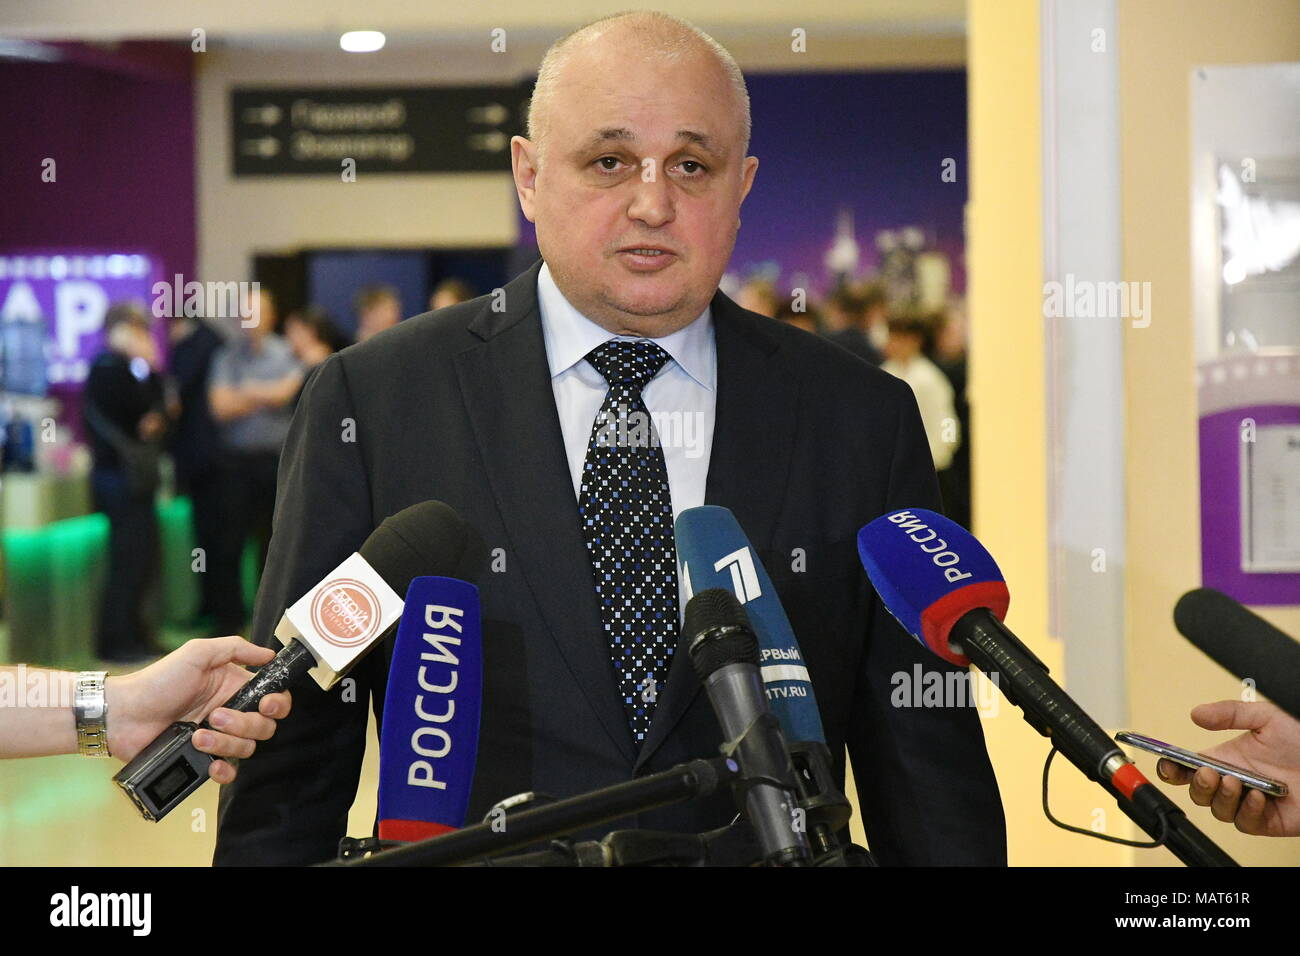 https://c8.alamy.com/comp/MAT61R/kemerovo-russia-04th-apr-2018-kemerovo-russia-april-4-2018-kemerovo-region-acting-governor-sergei-tsivilev-talks-to-the-media-after-a-meeting-with-heads-of-cities-and-districts-of-kemerovo-region-as-well-as-local-businessmen-alexander-patrintass-credit-itar-tass-news-agencyalamy-live-news-MAT61R.jpg